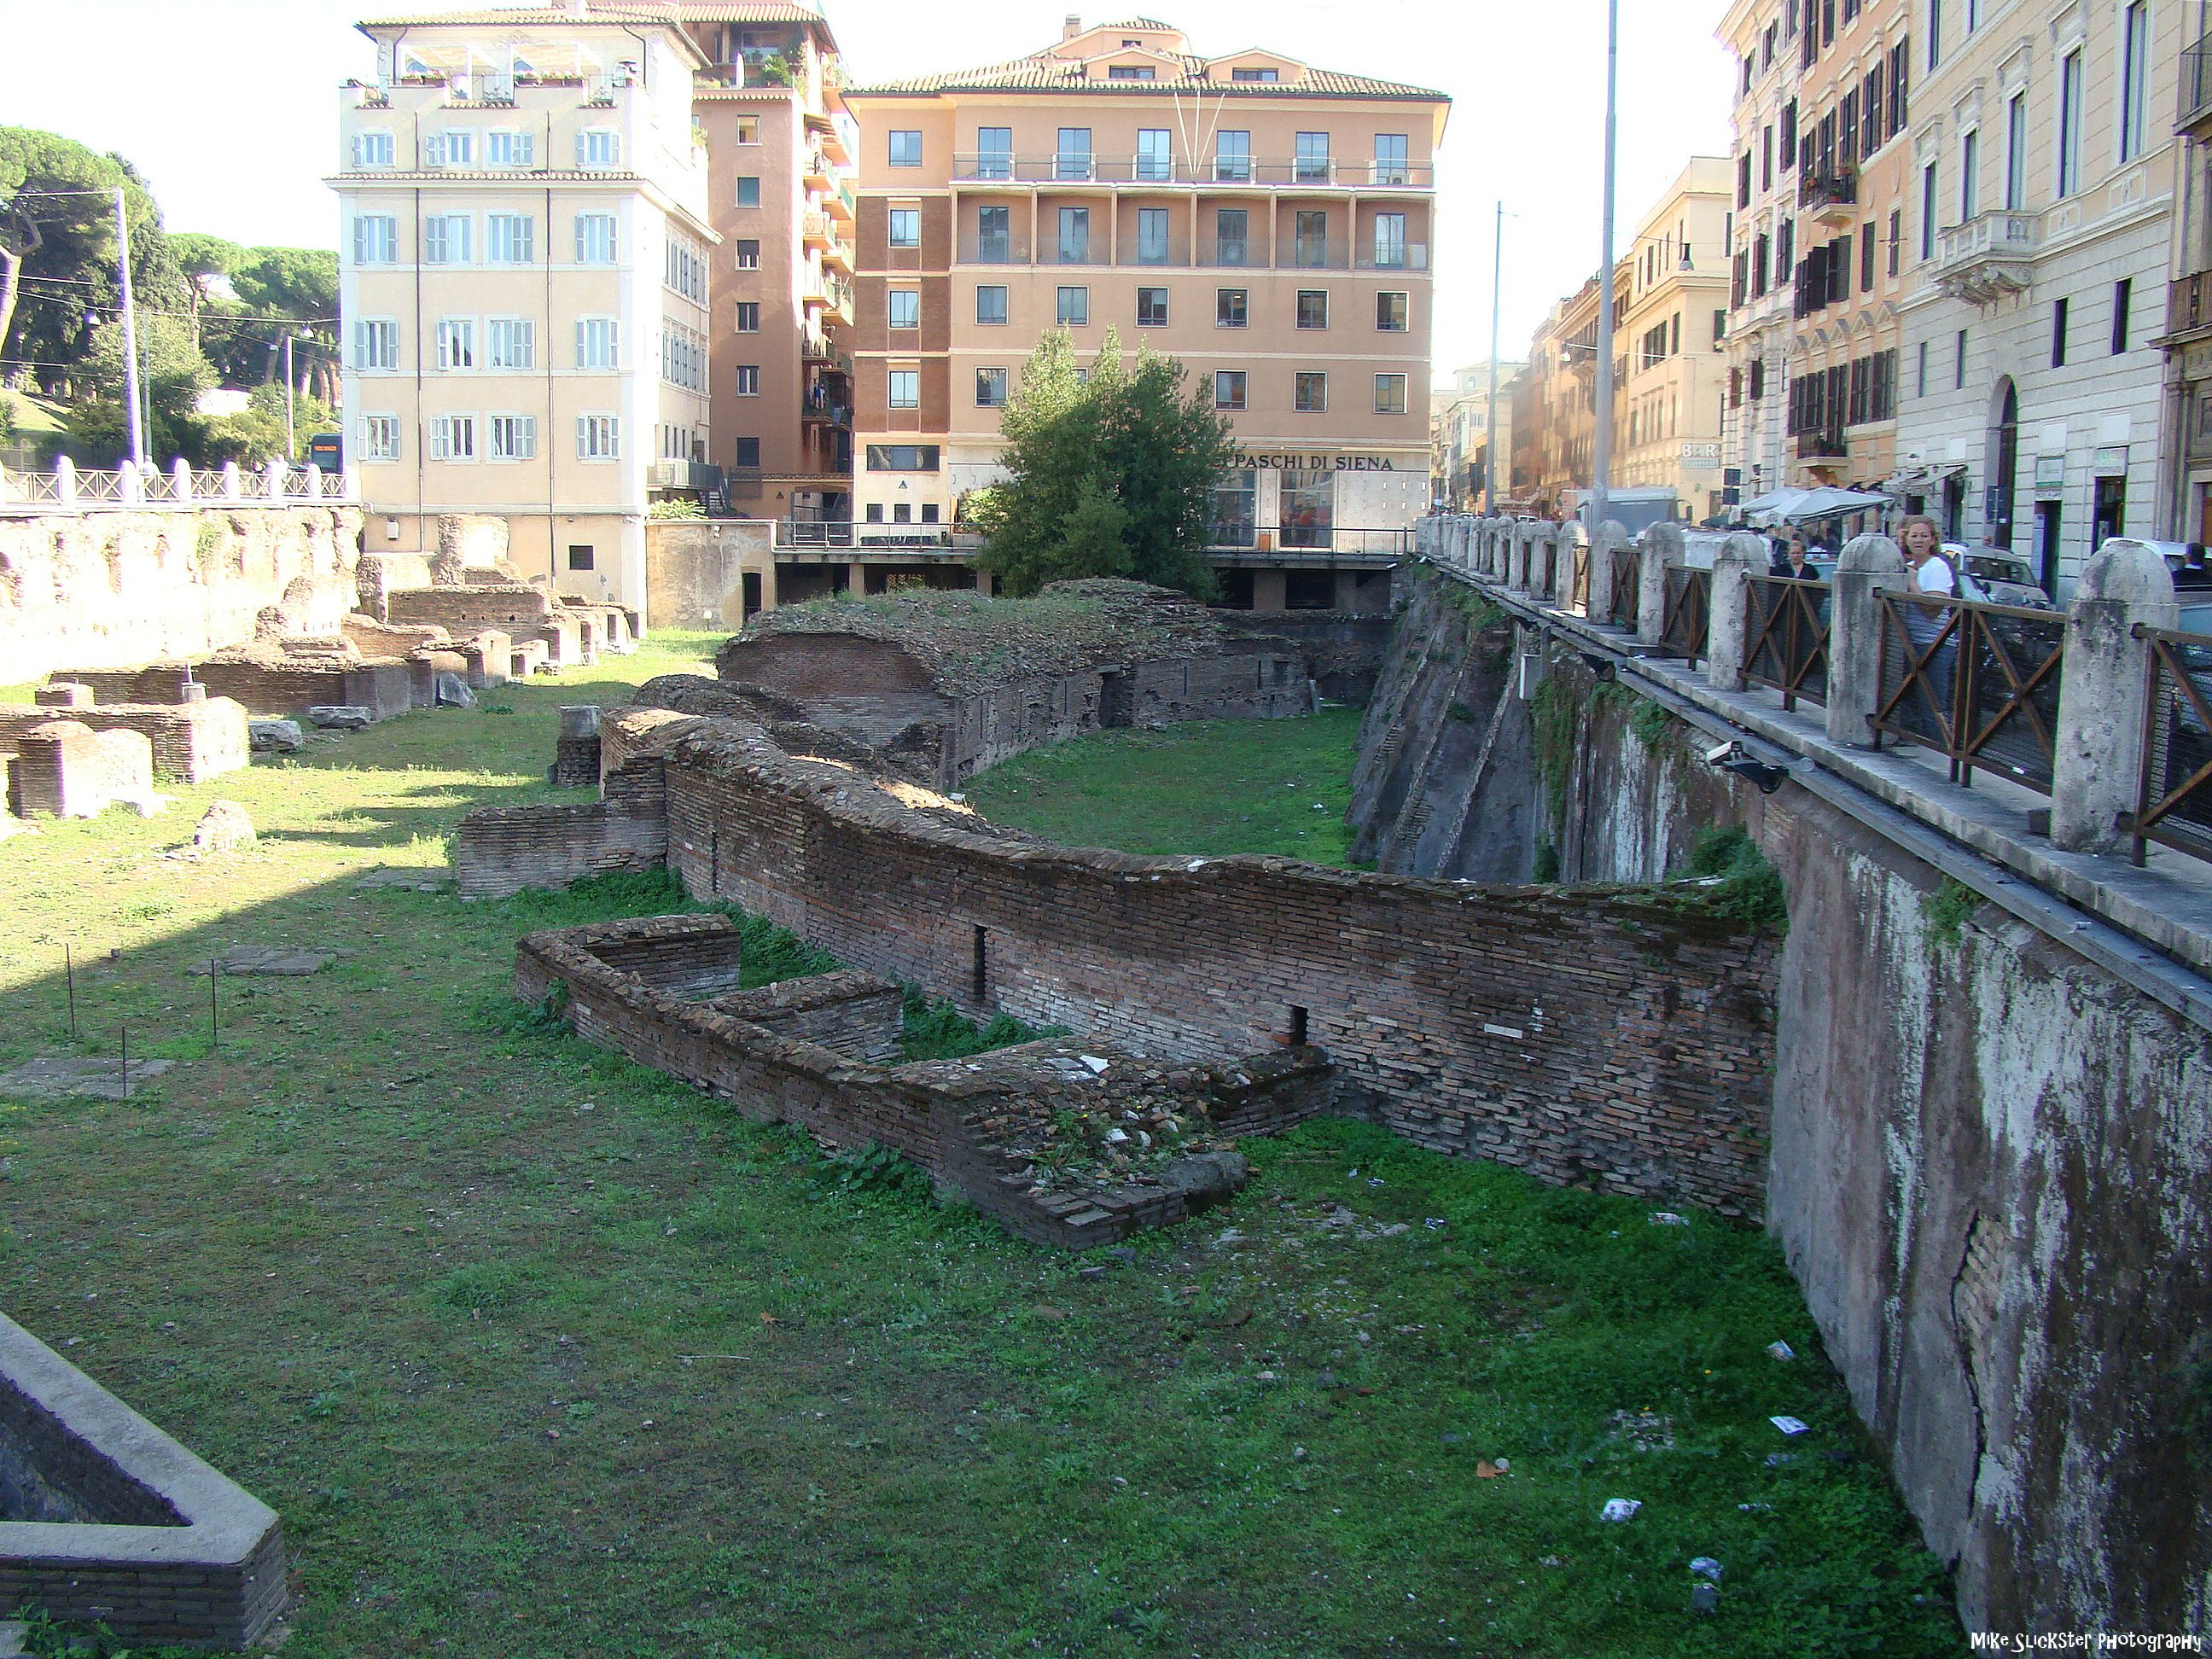 Remnant Of The Ludus Magnus Otherwise Known As The Gladiator School The Ruins Were Built Originally By The Emperor Domitian 81 96 Ce The Site Is Directly